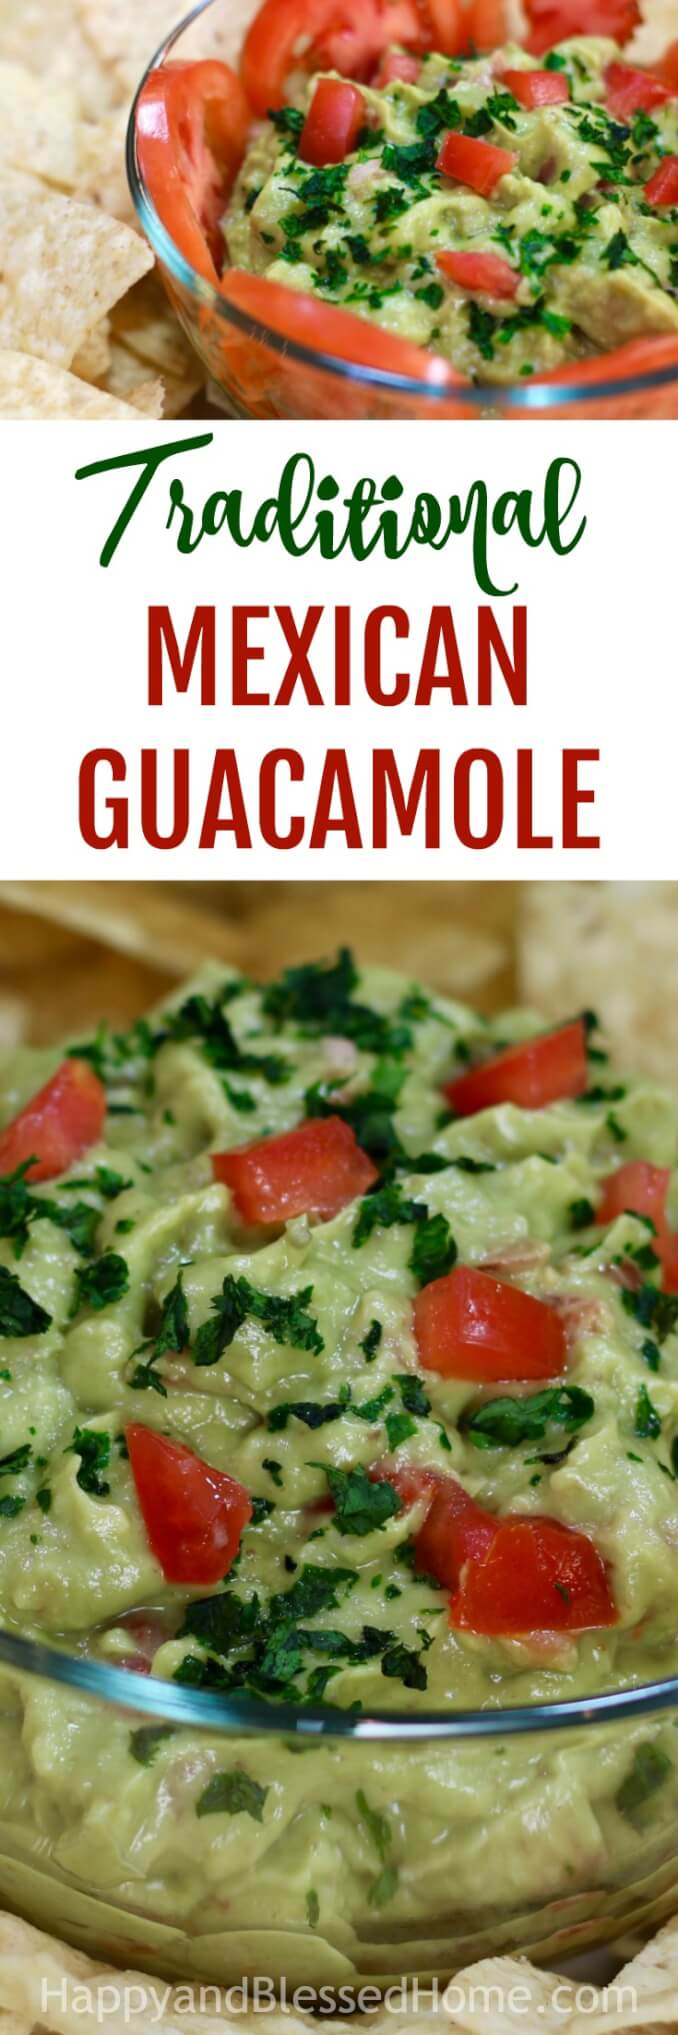 This Heartwarming Easy Recipe for Traditional Mexican Guacamole satisfies the need for a bit of heat with the Guac. Perfect with tacos, tortillas, burritos, and everything Mexican, Spicy Piquin Guacamole is a must have for any family gathering featuring Mexican food.